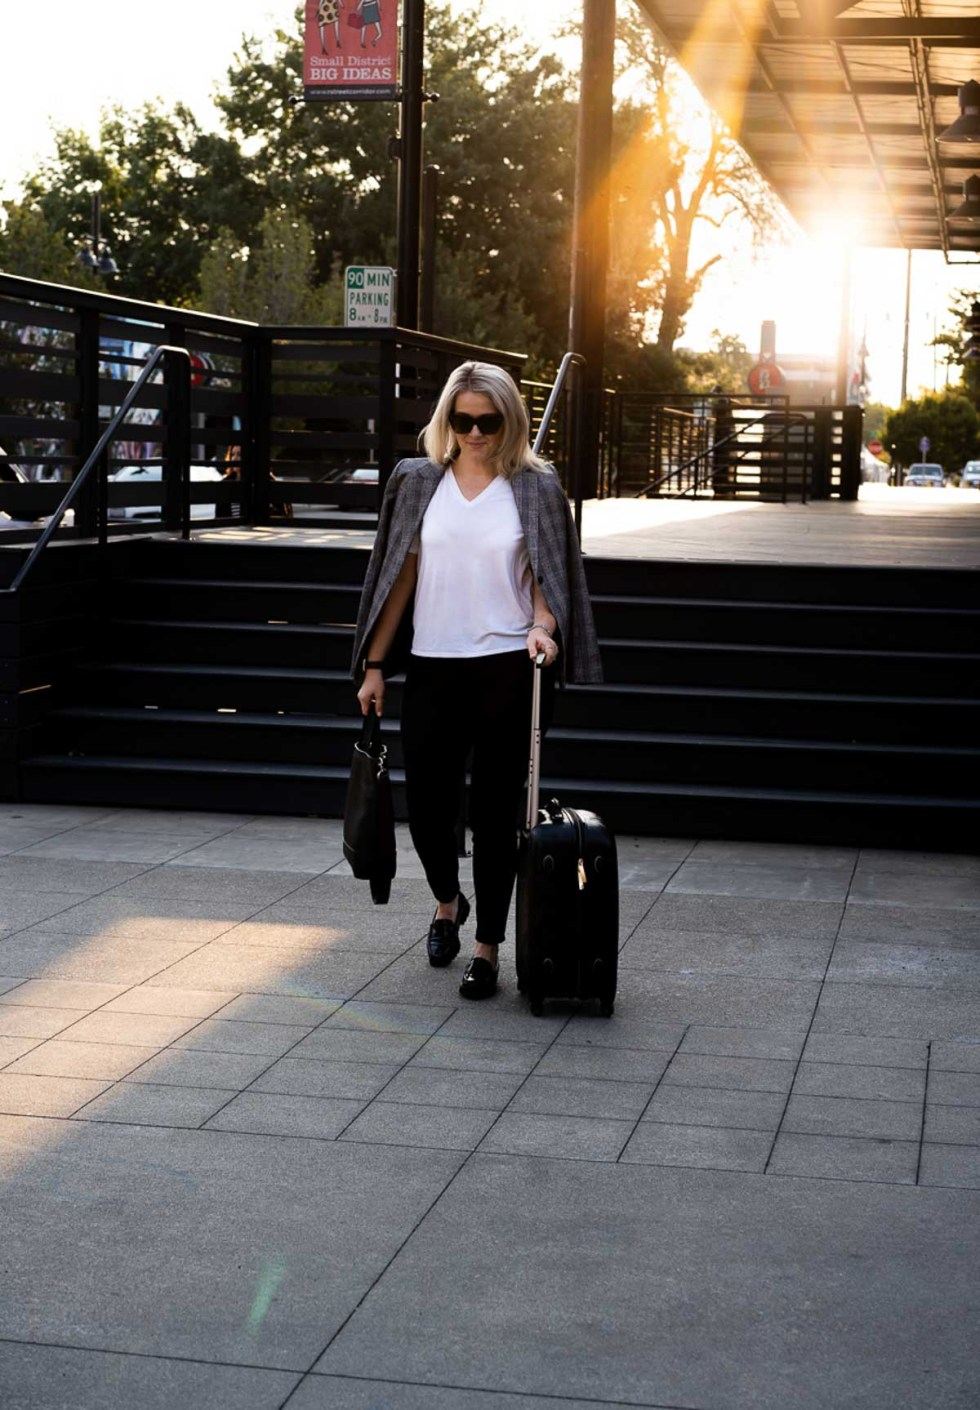 Fall Travel Outfits - White Tee + Jeans - Walking with Spinner Suitcase